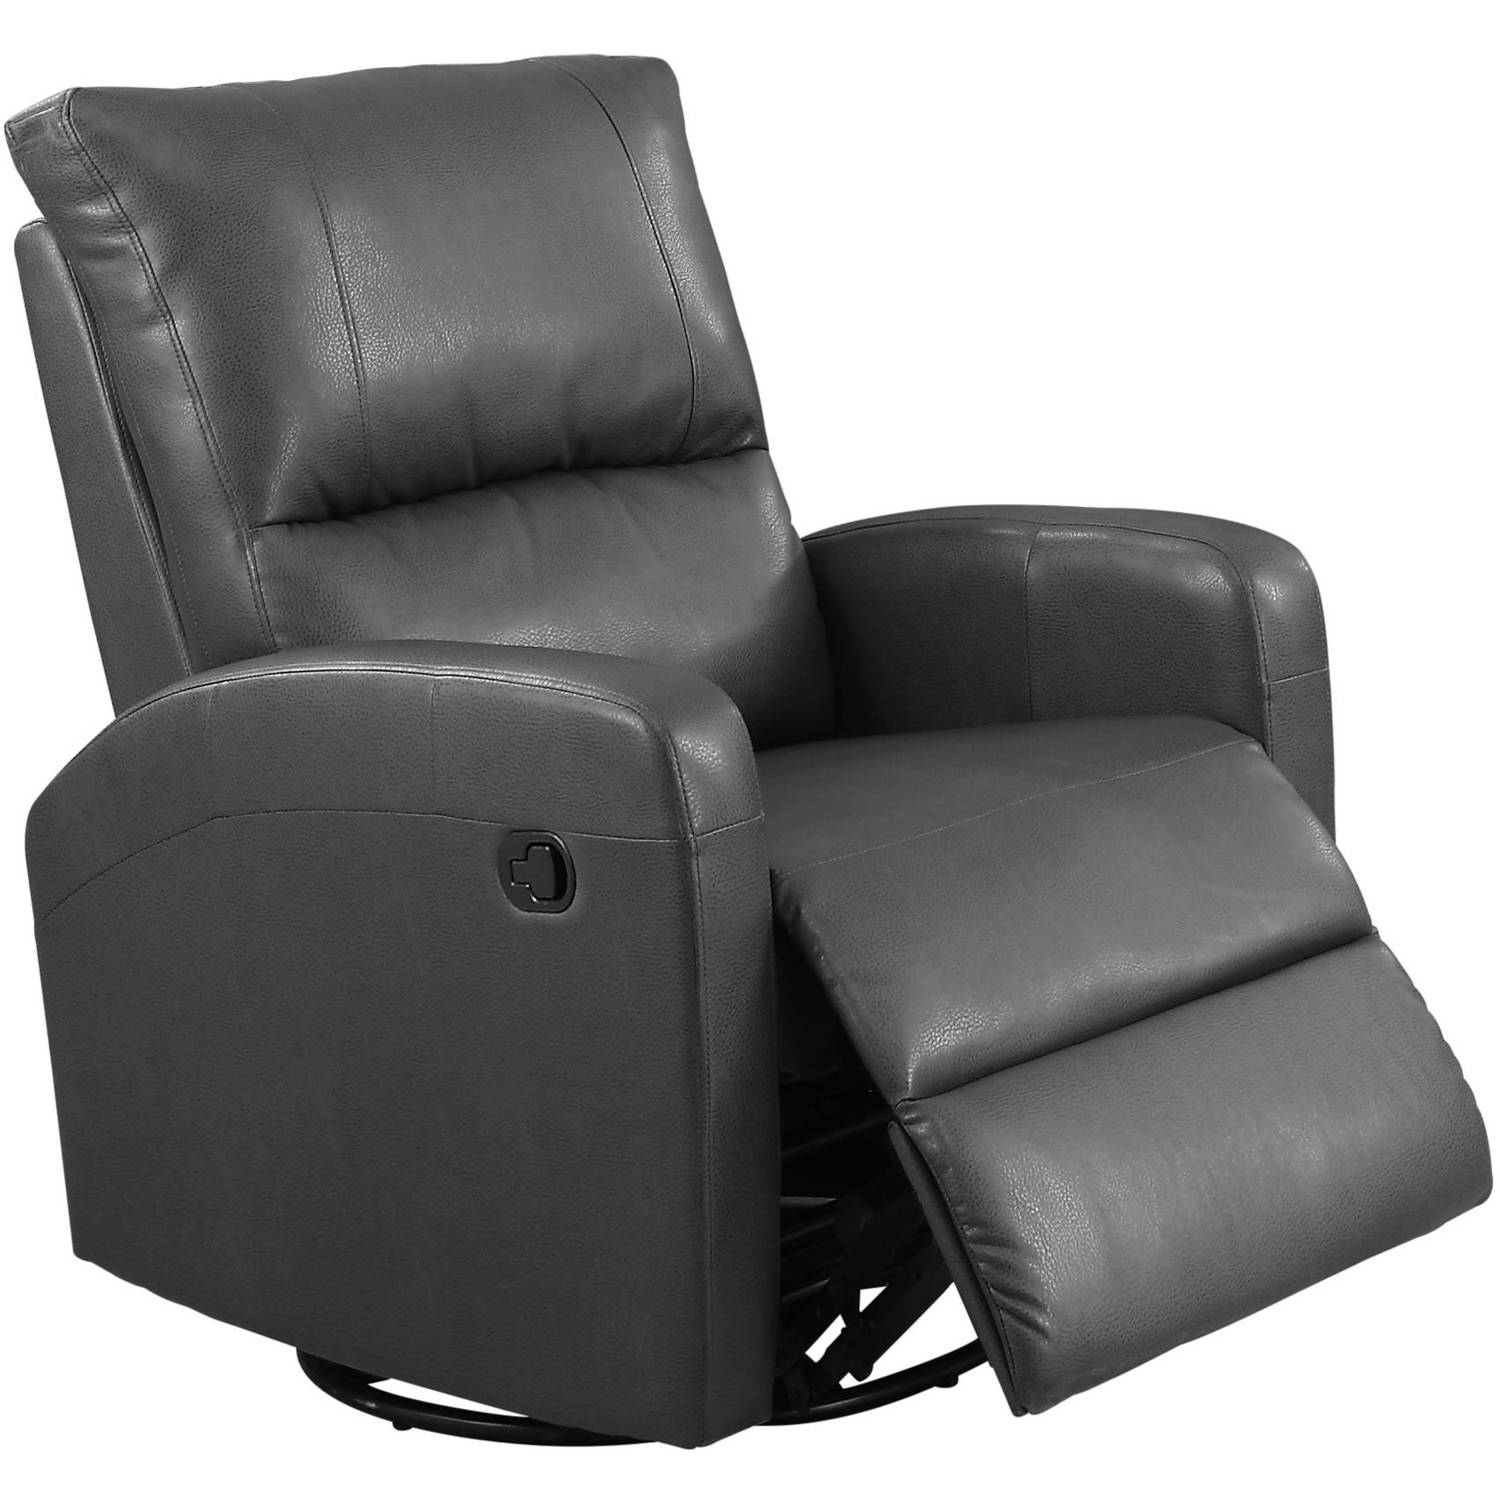 Monarch Recliner Swivel Glider / Charcoal Grey Bonded Leather